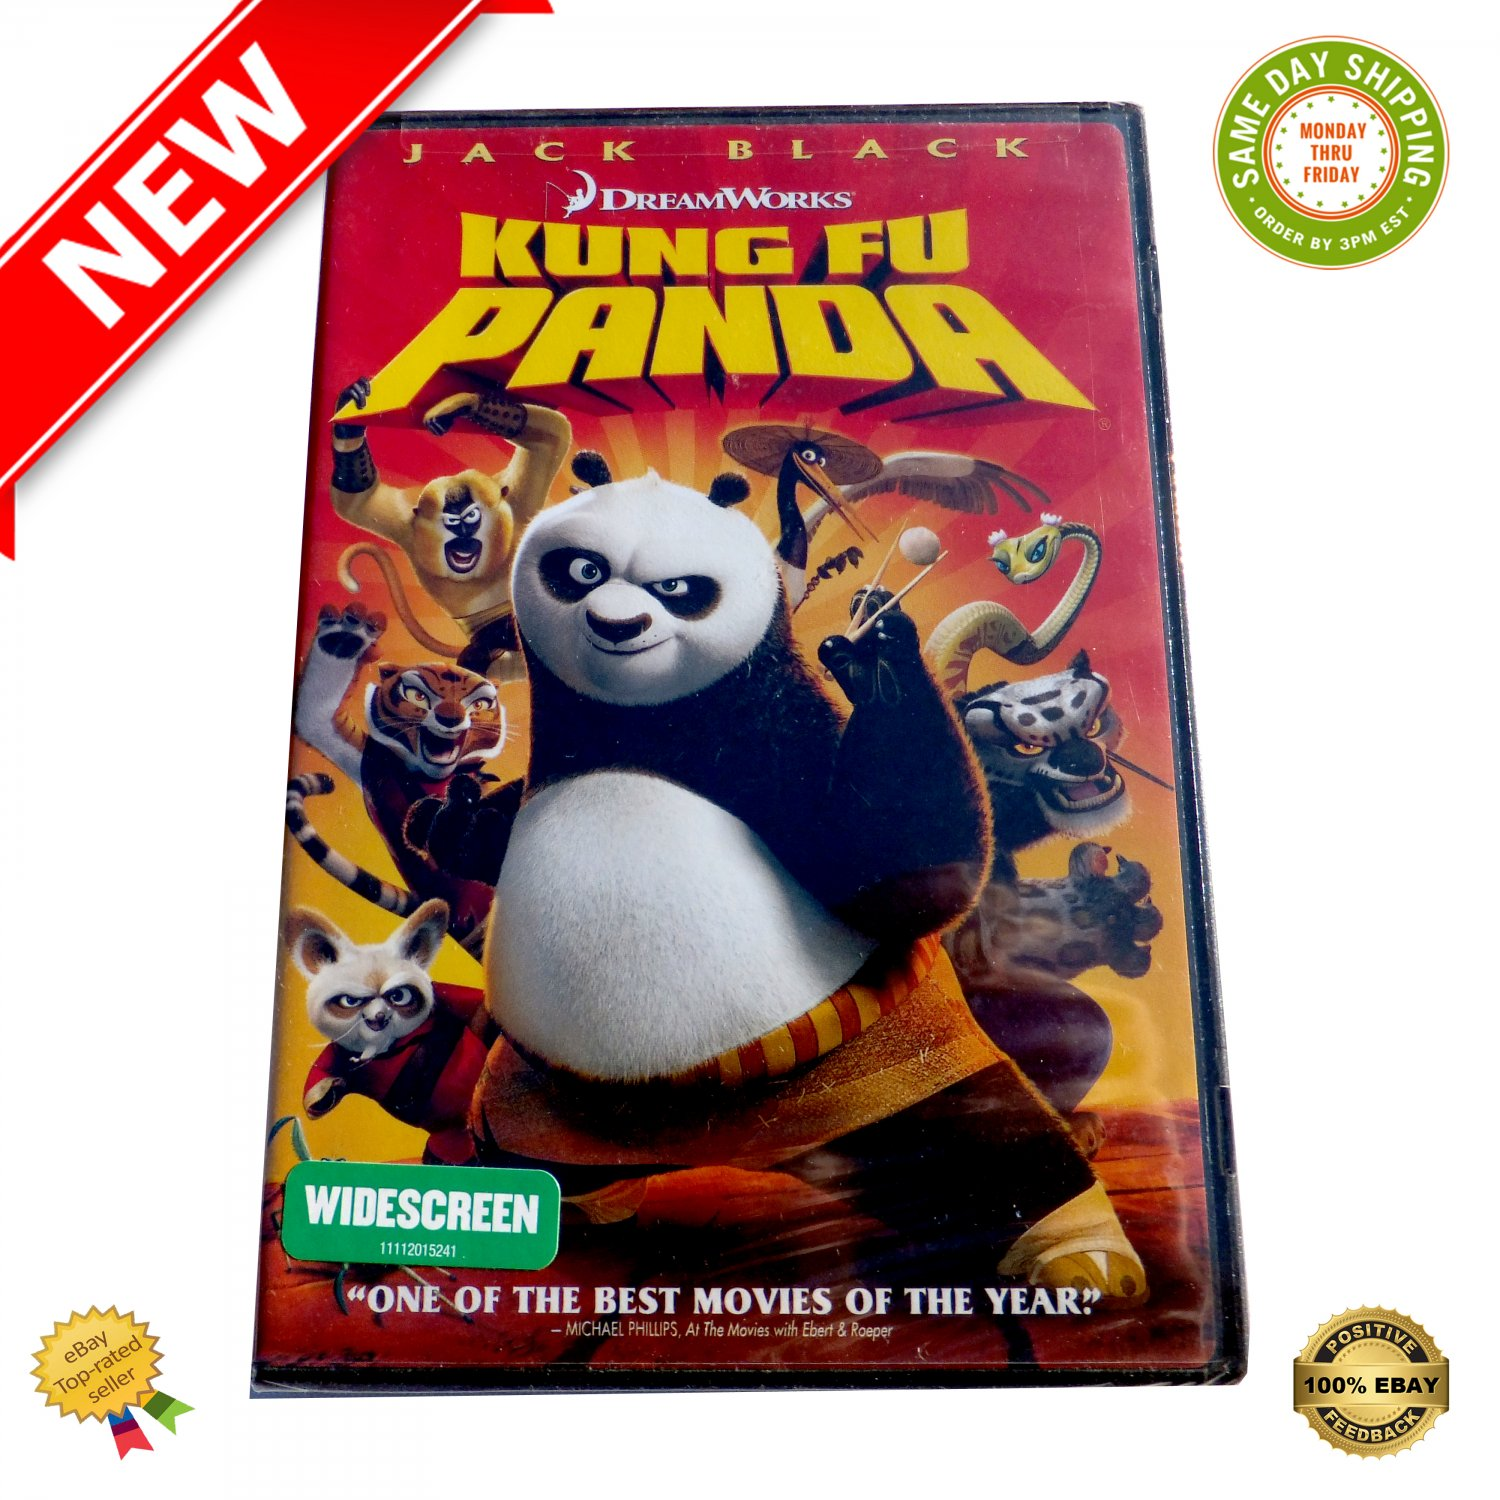 � Kung Fu Panda The Movie Dreamworks (Widescreen Edition) DVD - NEW �